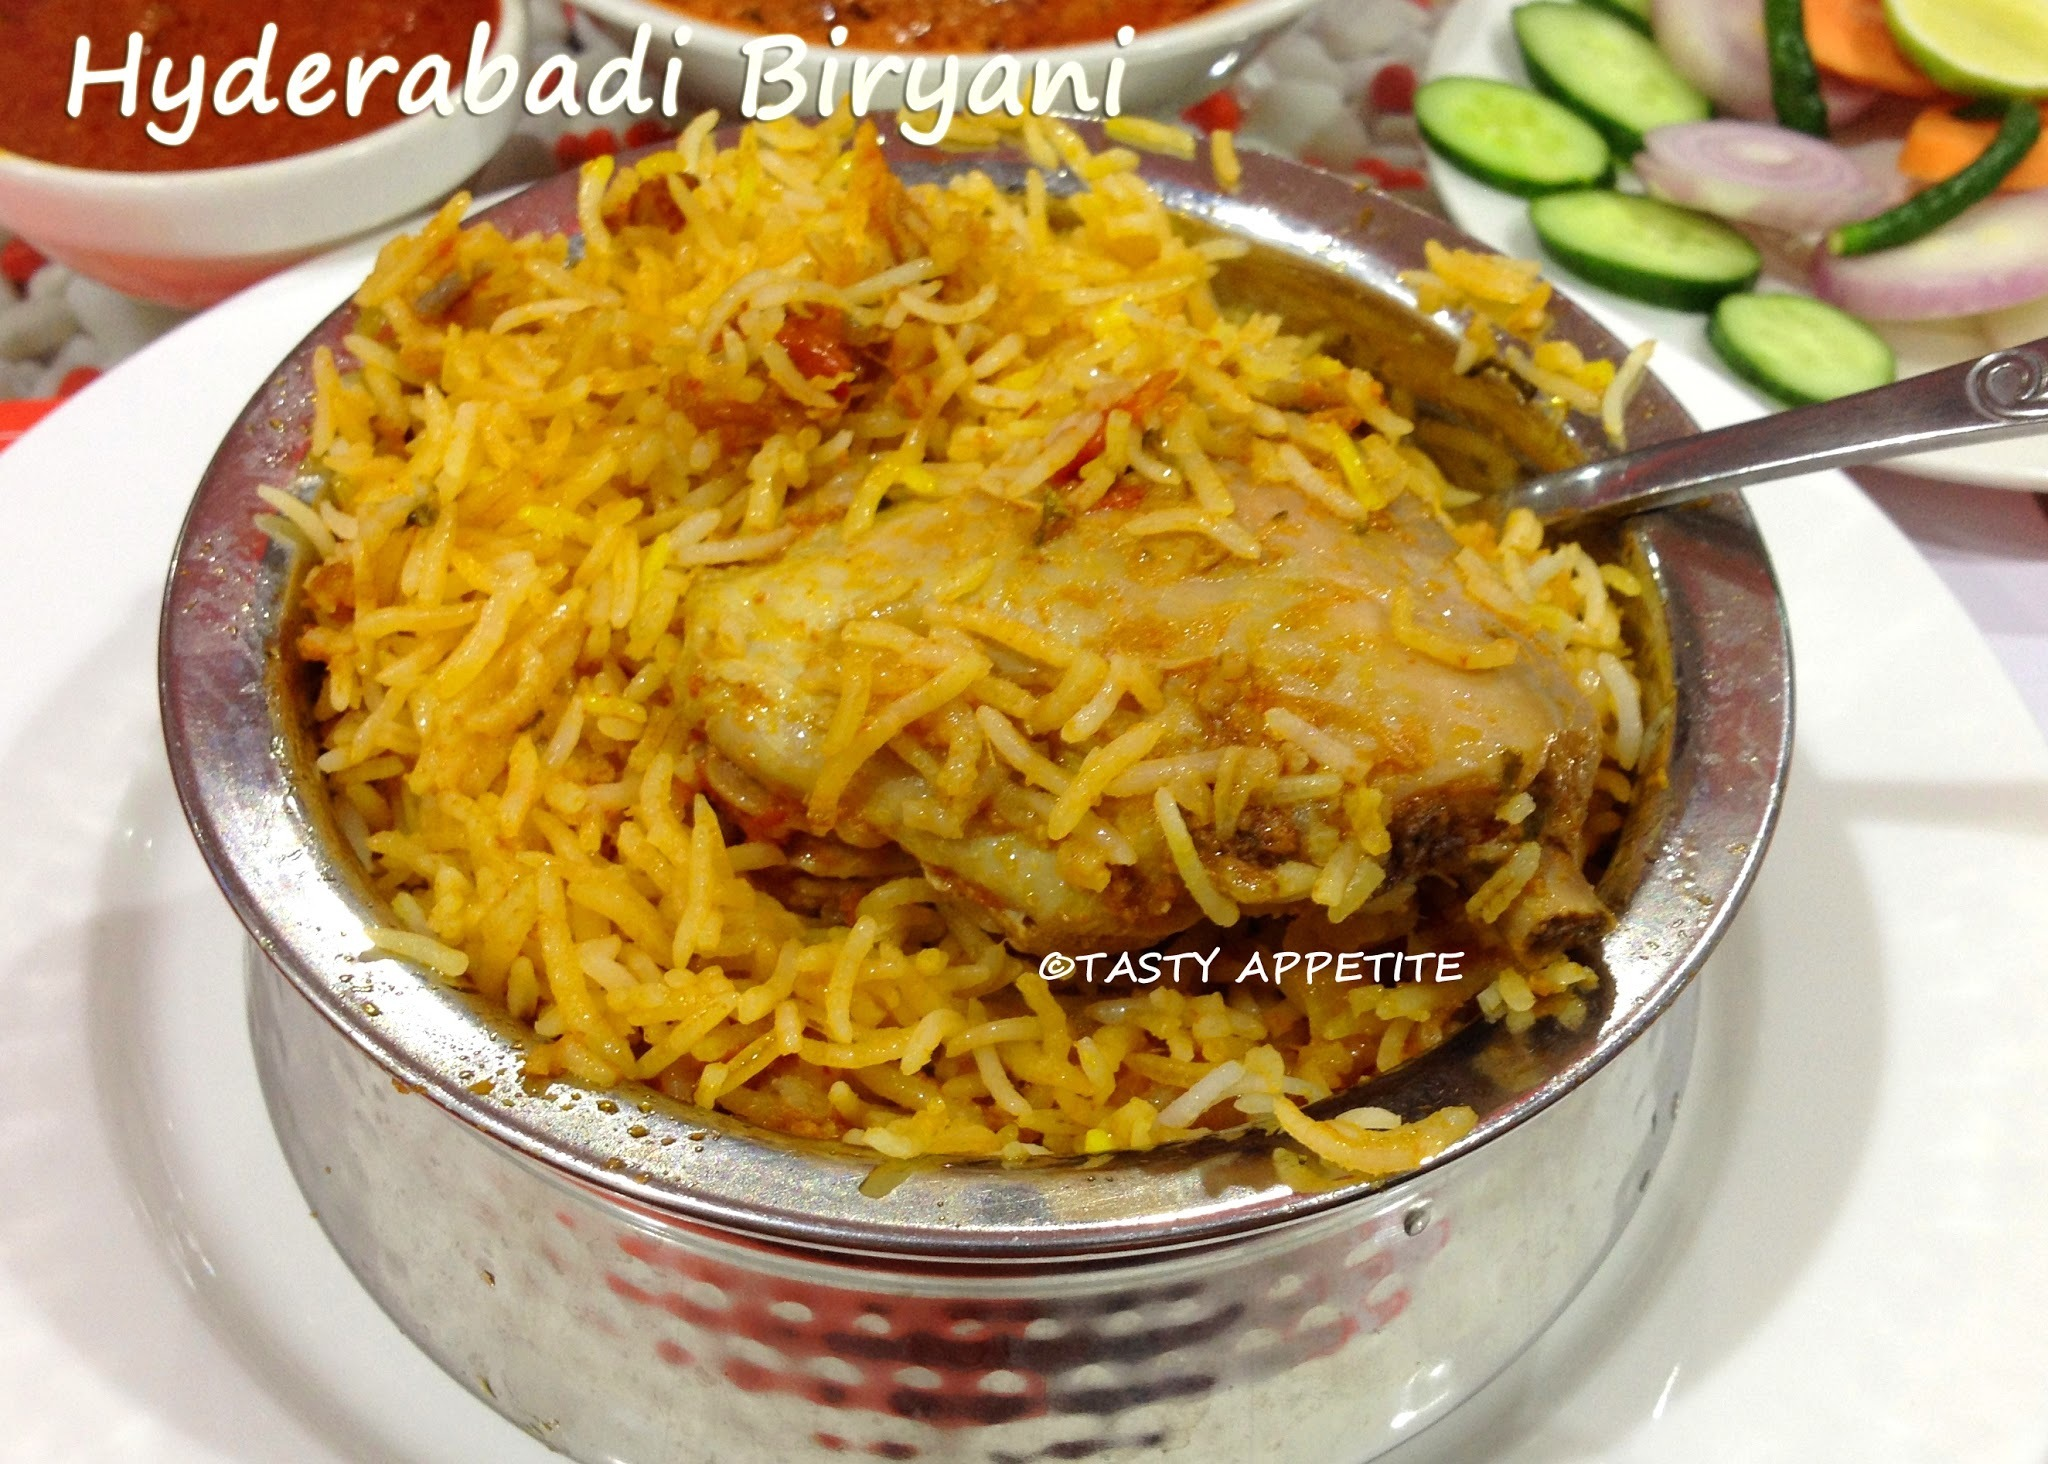 Hyderabadi Chicken Dum Biryani Recipe / Hyderabadi Biryani / Spicy Biryani Recipes